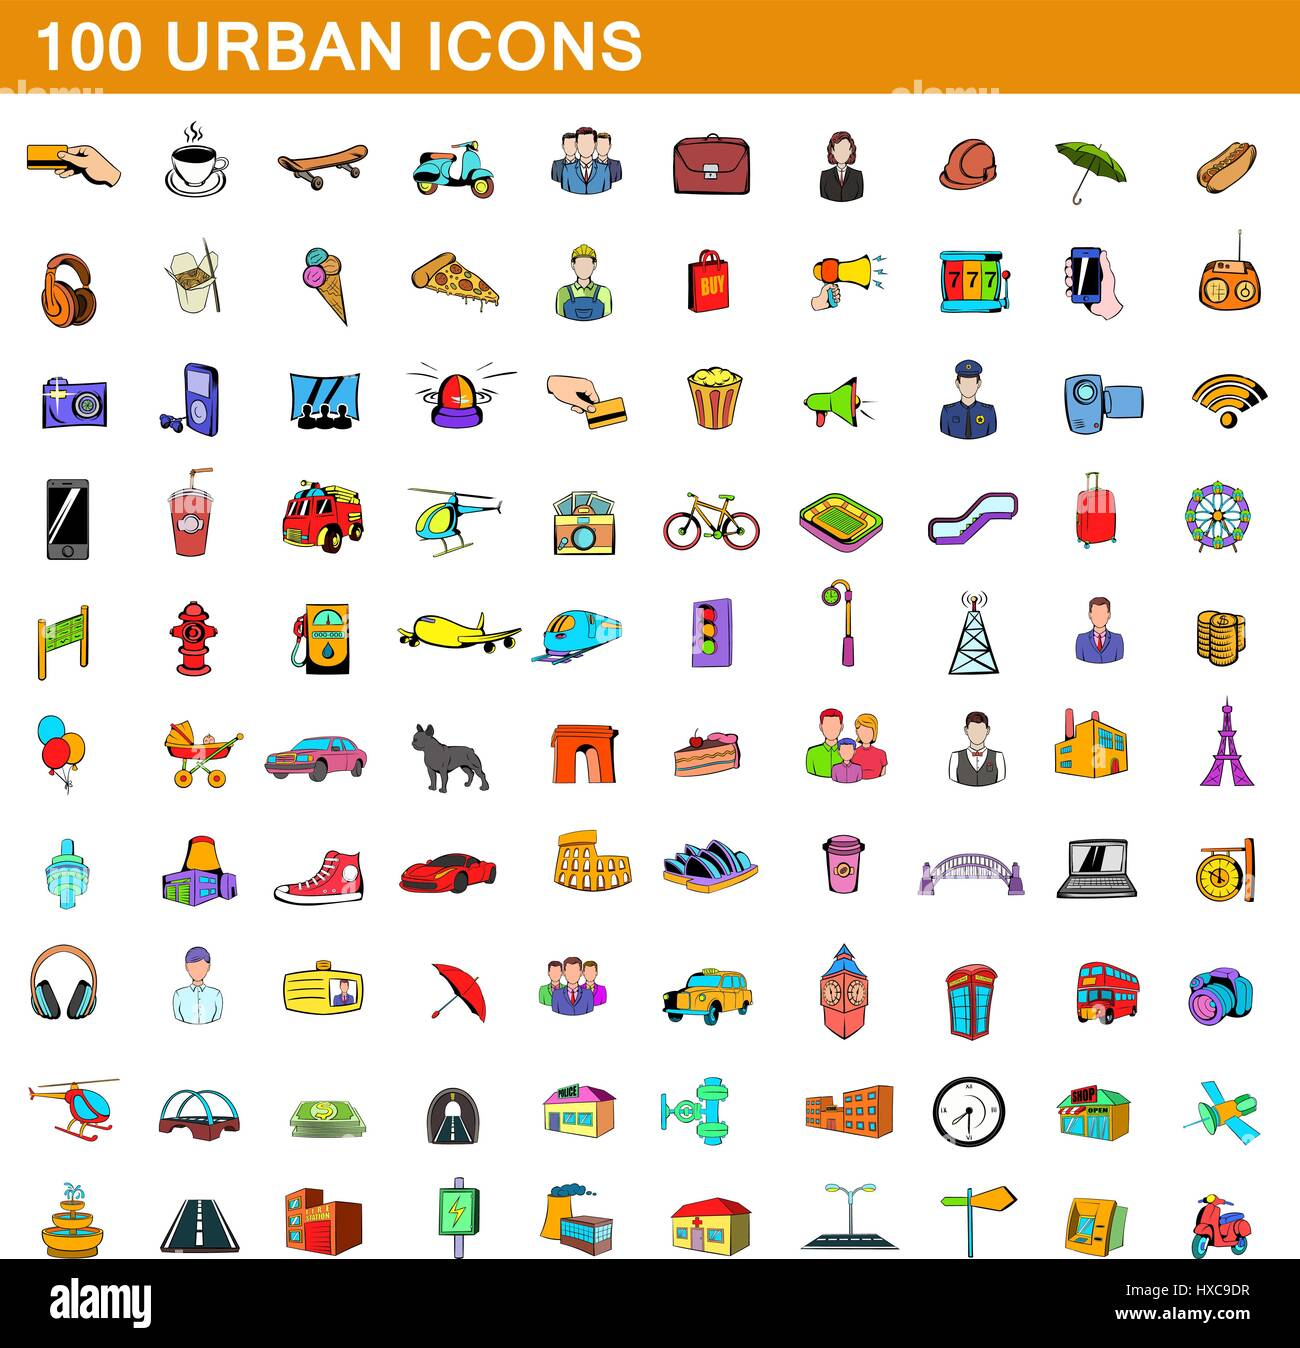 100 urban icons set, cartoon style  - Stock Vector